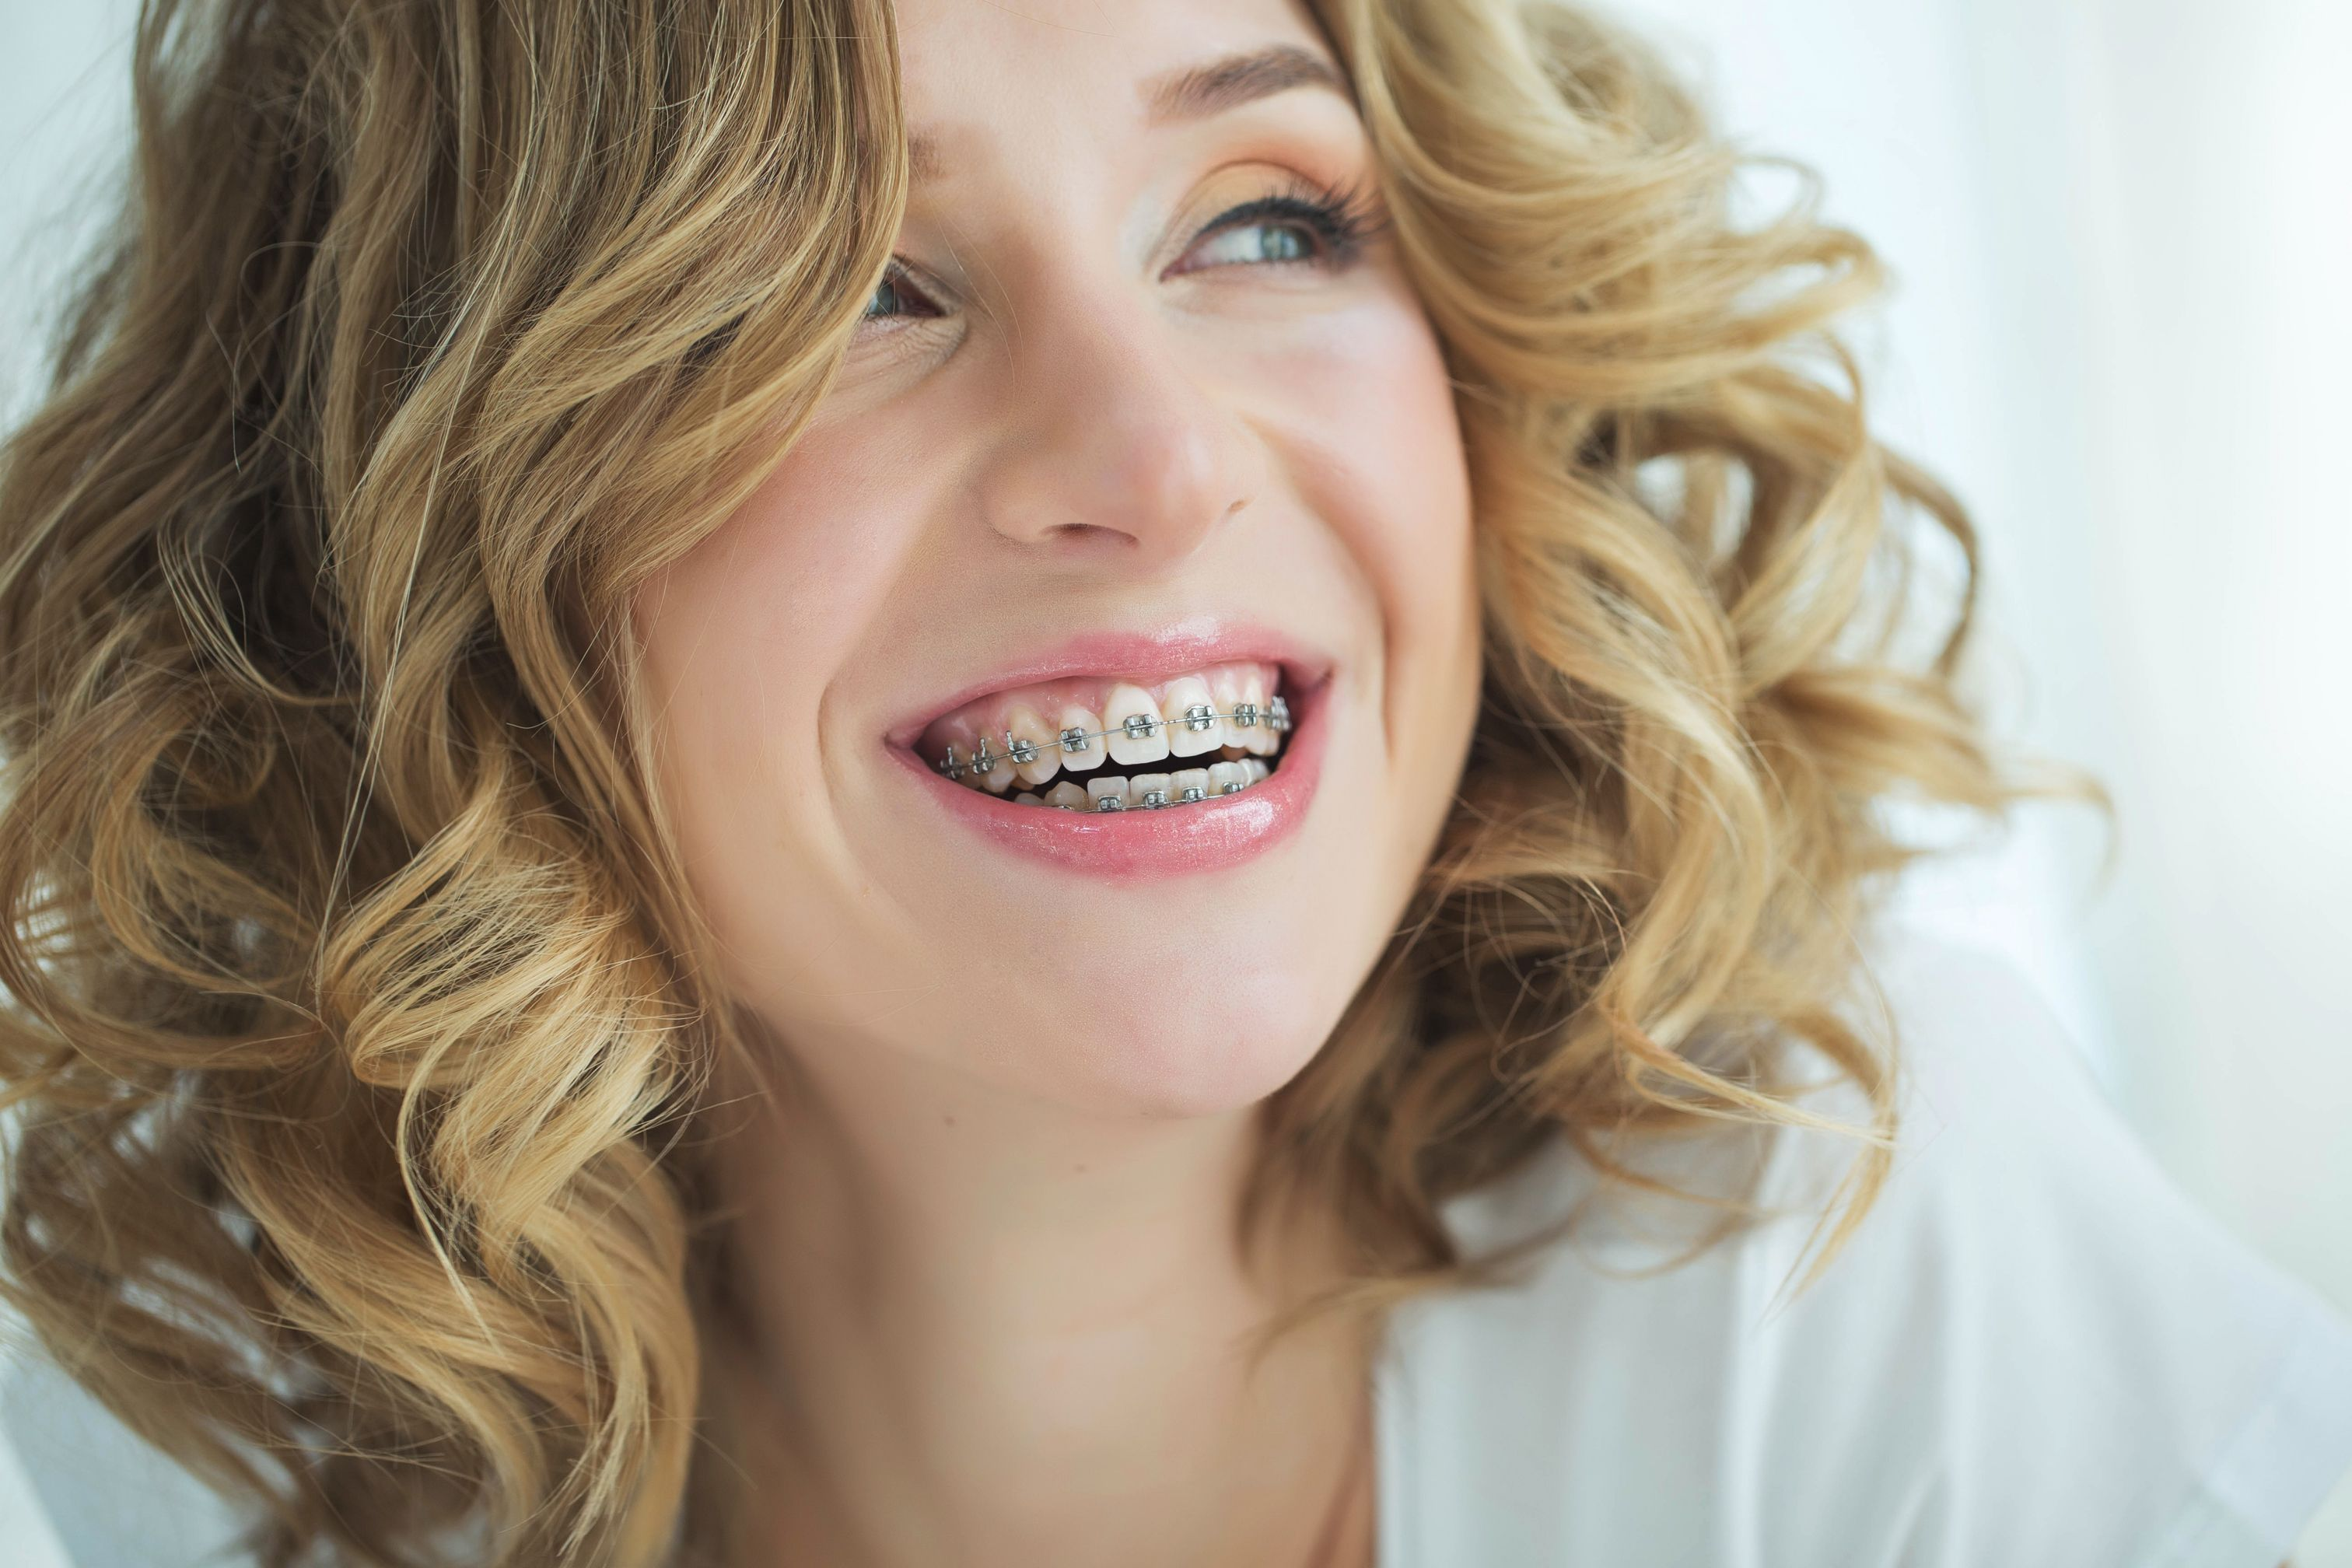 cosmetic dentistry dental implants and sedation dentistry in Kelowna and West Kelowna